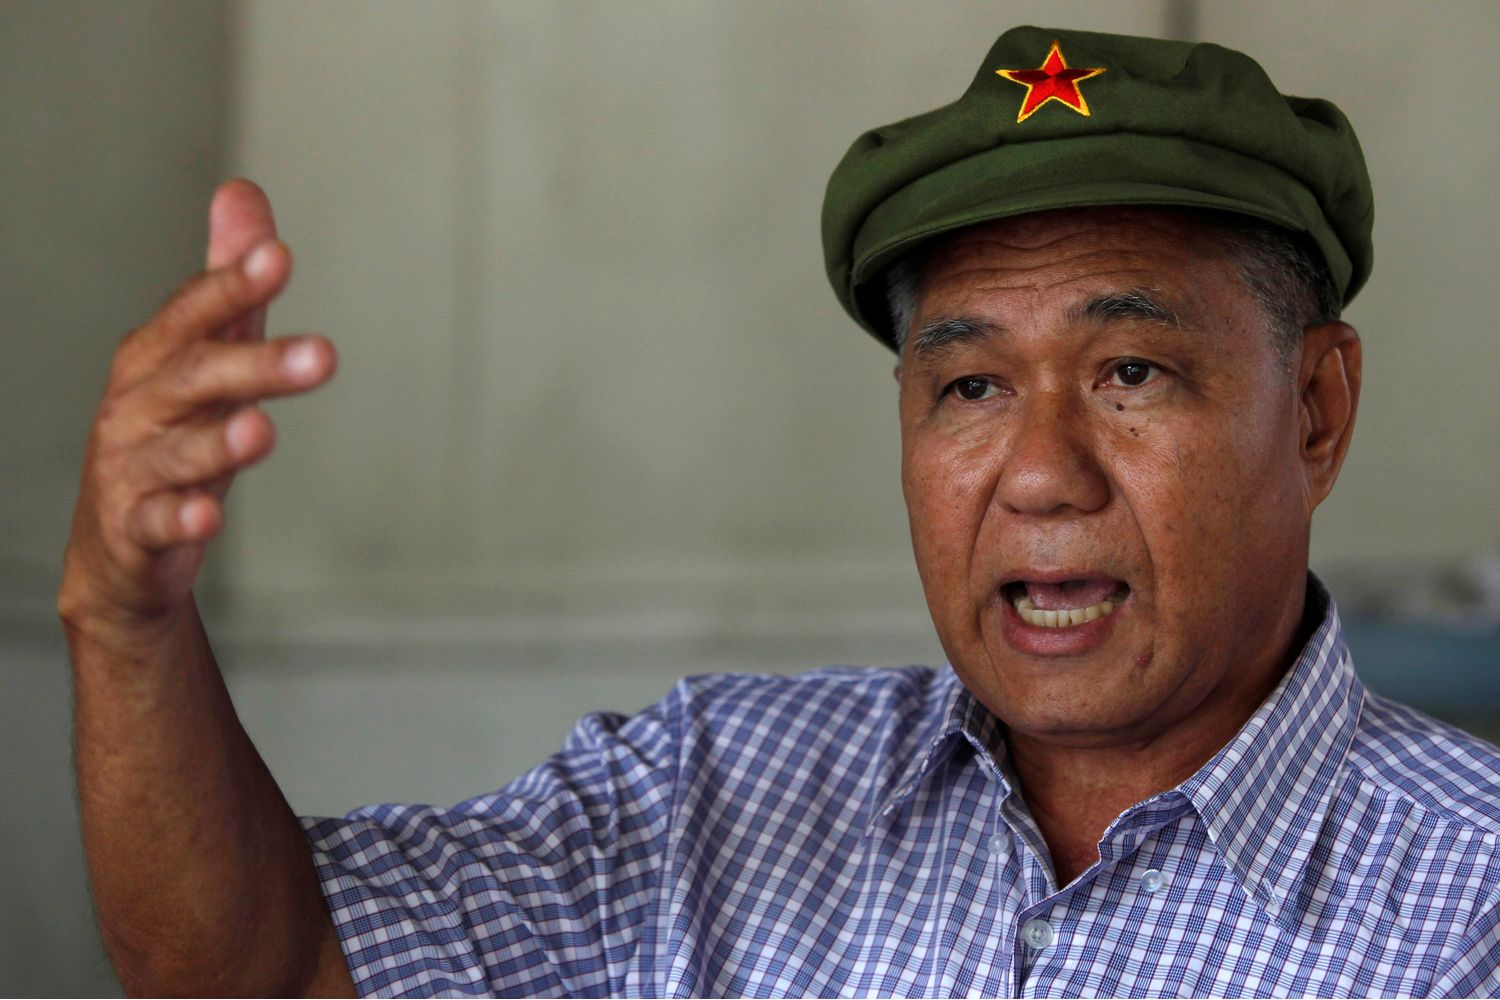 Former communist and political prisoner Surachai Danwattananusorn gestures during an interview at his home in Bangkok on Aug 25, 2010. (Reuters photo)